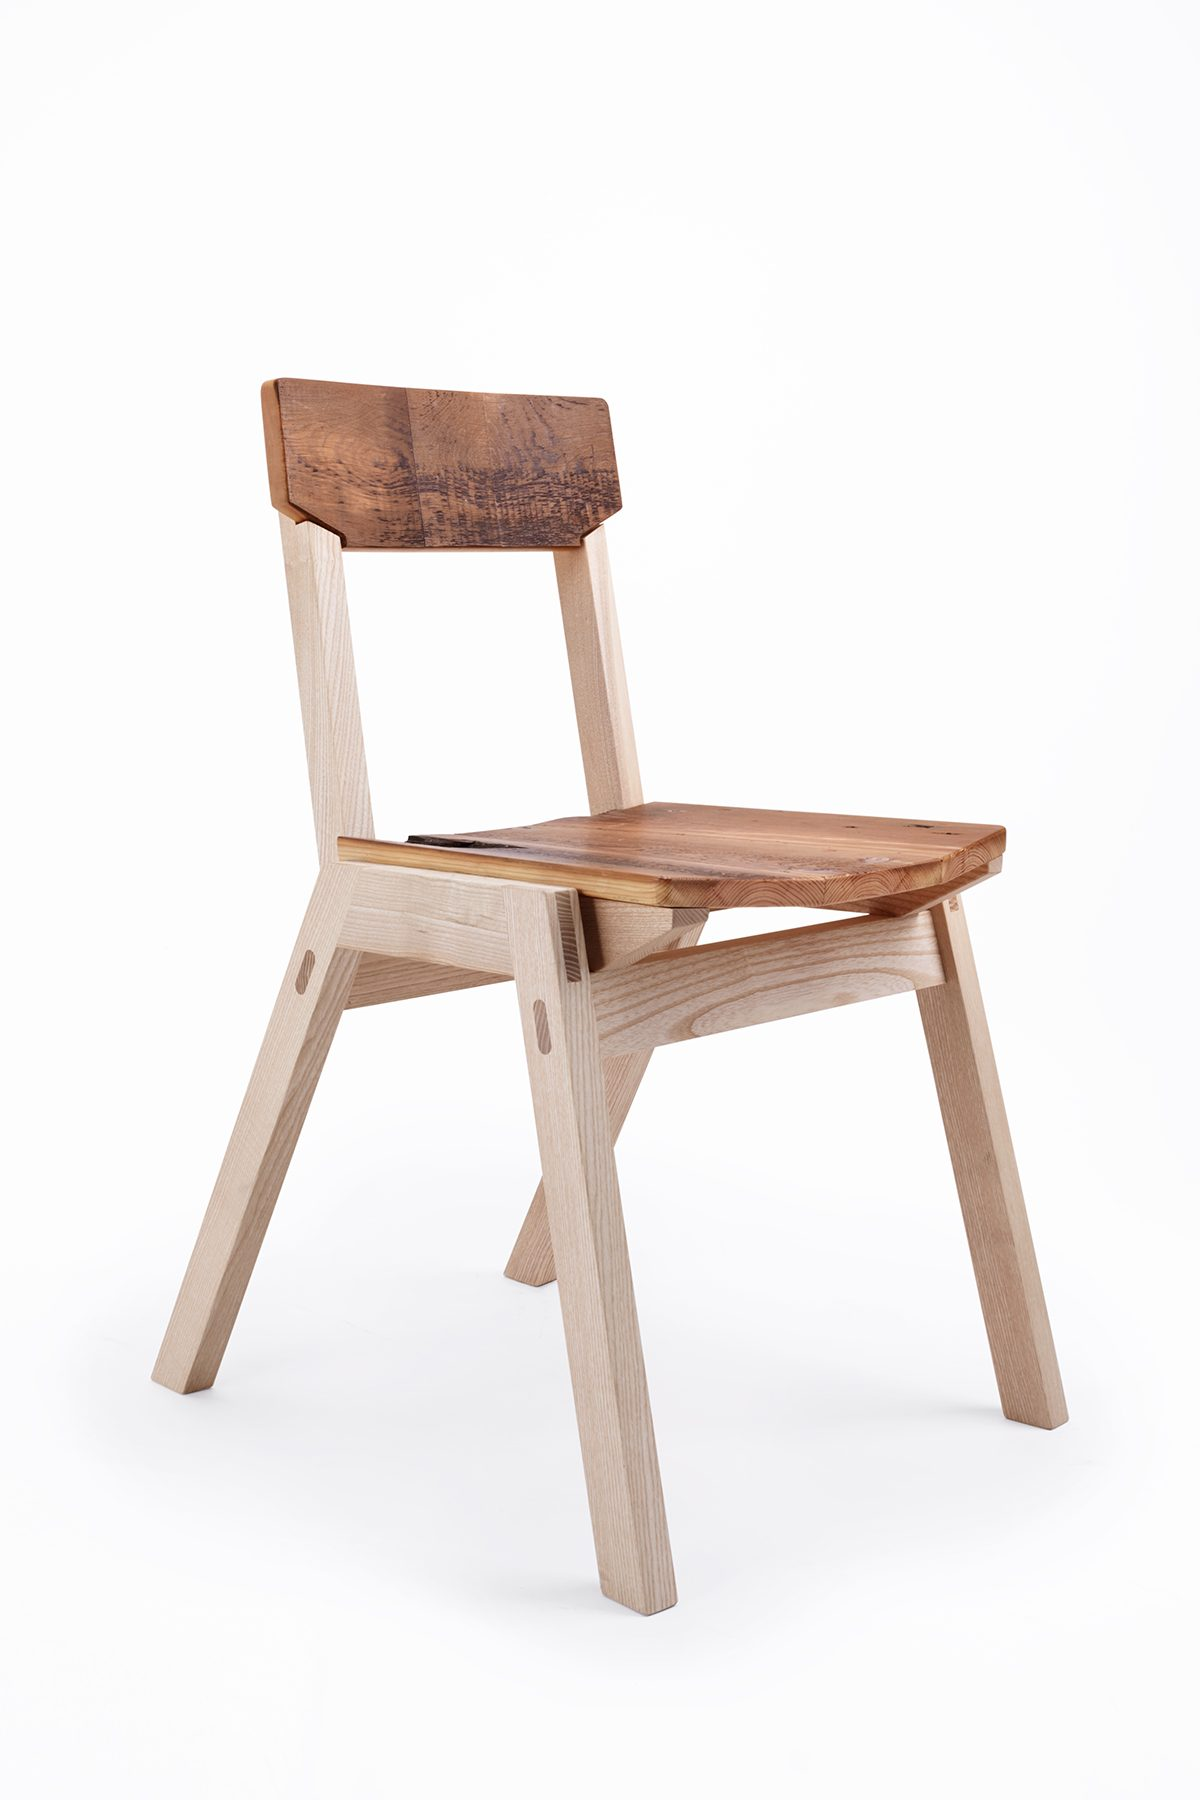 Jan-Hendzel-Chair-Main-3Q